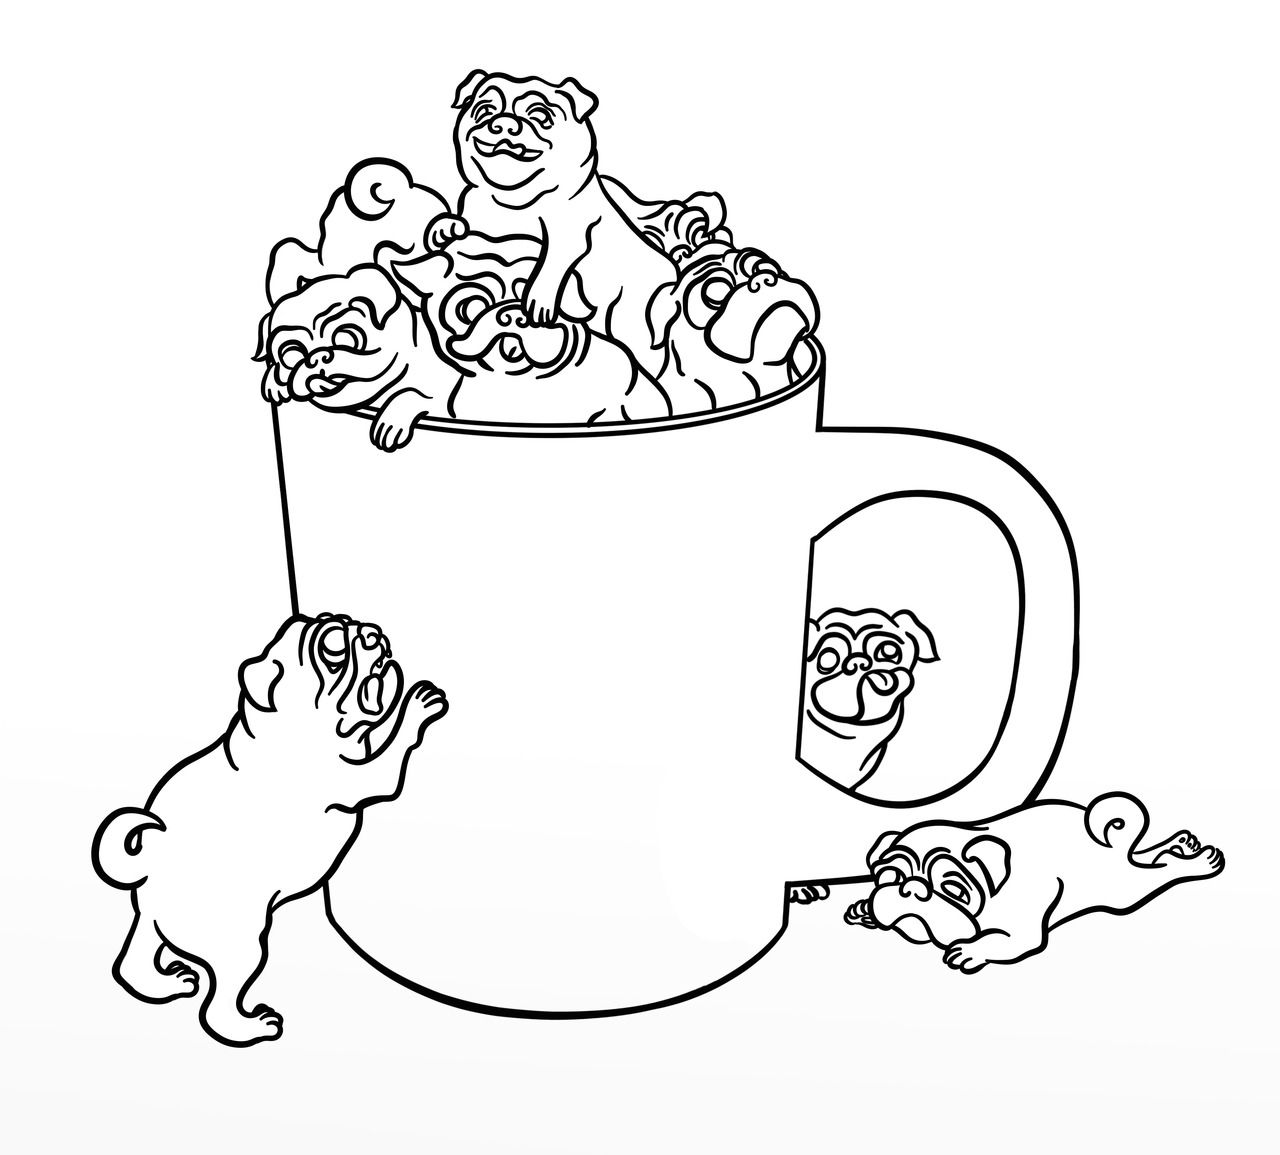 Coloring pages tumblr - Pug Puppy Coloring Pages Free Christmas Pug Coloring Pages Coloring Home Pages